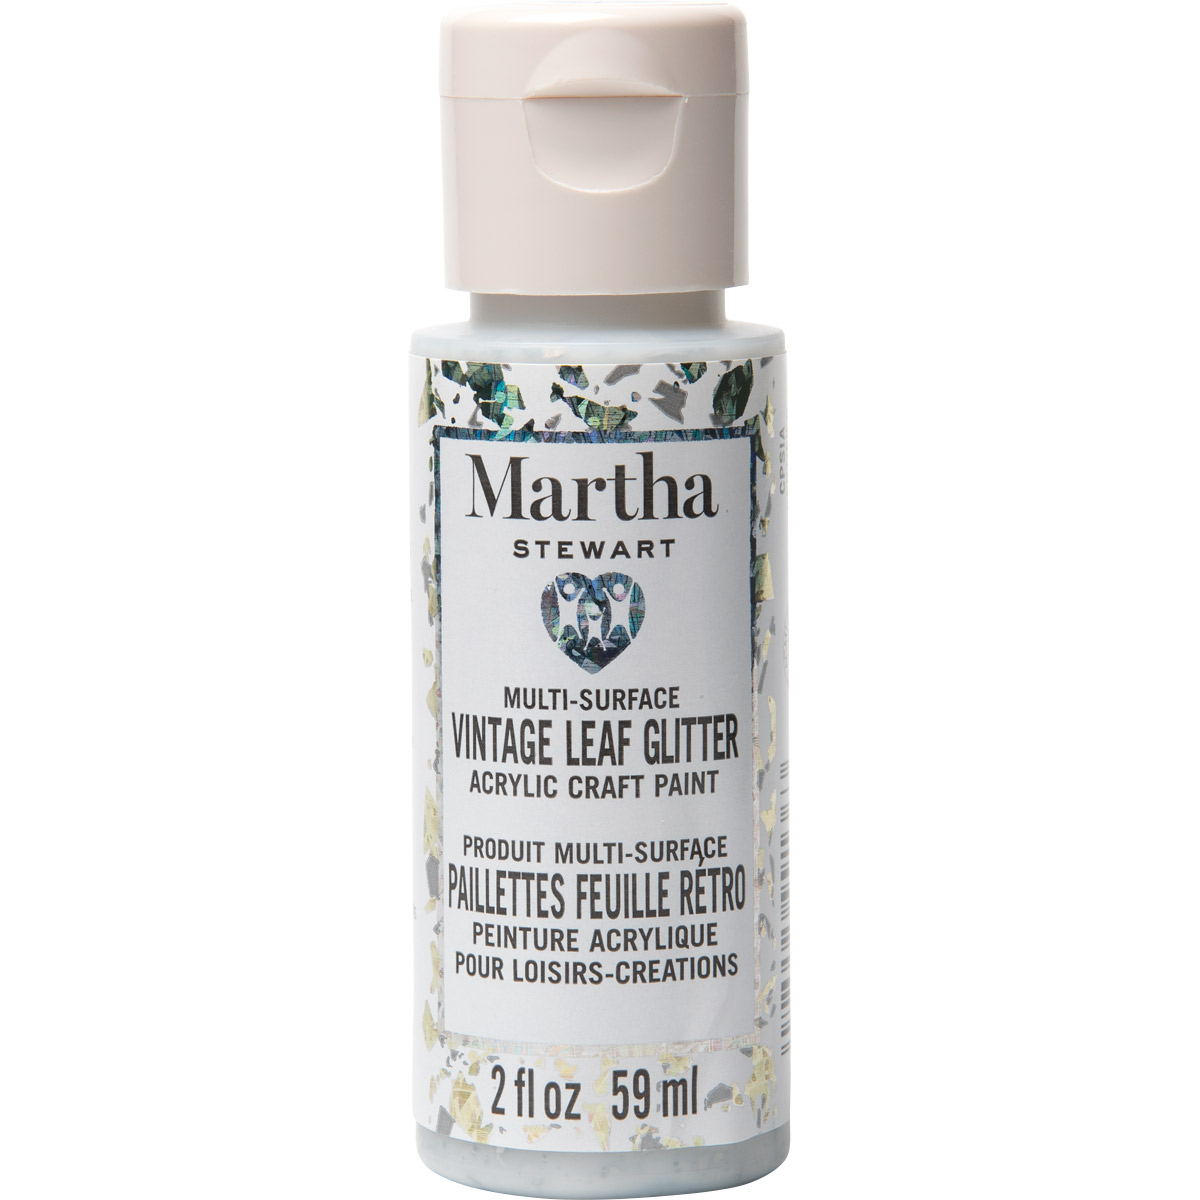 Martha Stewart ® Multi-Surface Vintage Leaf Glitter Acrylic Craft Paint CPSIA - Iridescent Silver, 2